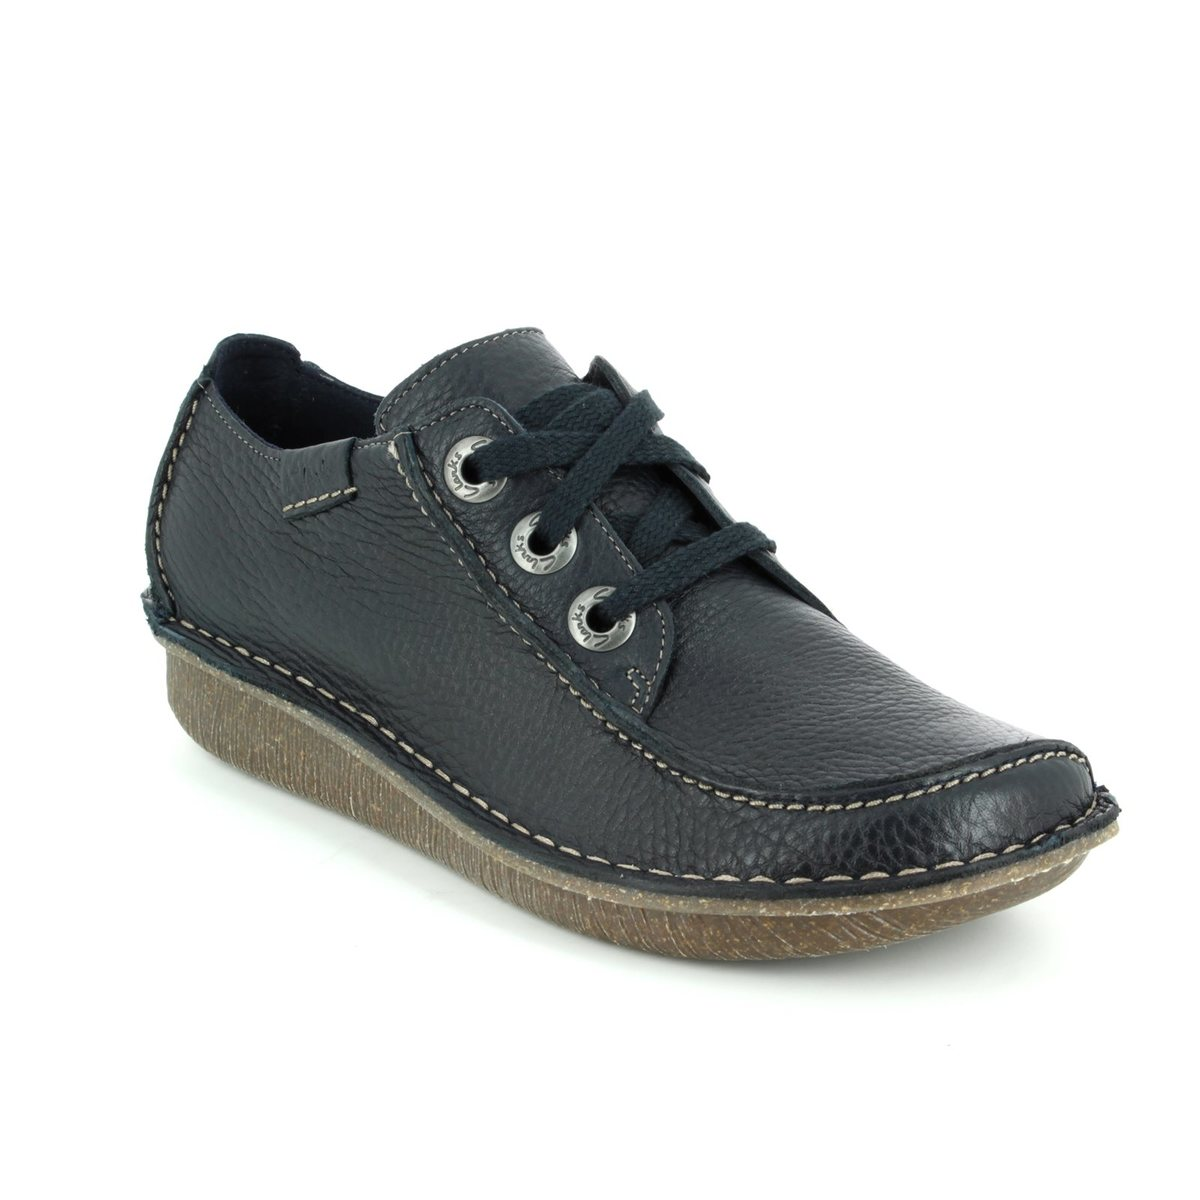 ed147f0446 Clarks Lacing Shoes - Navy - 0112 34D FUNNY DREAM